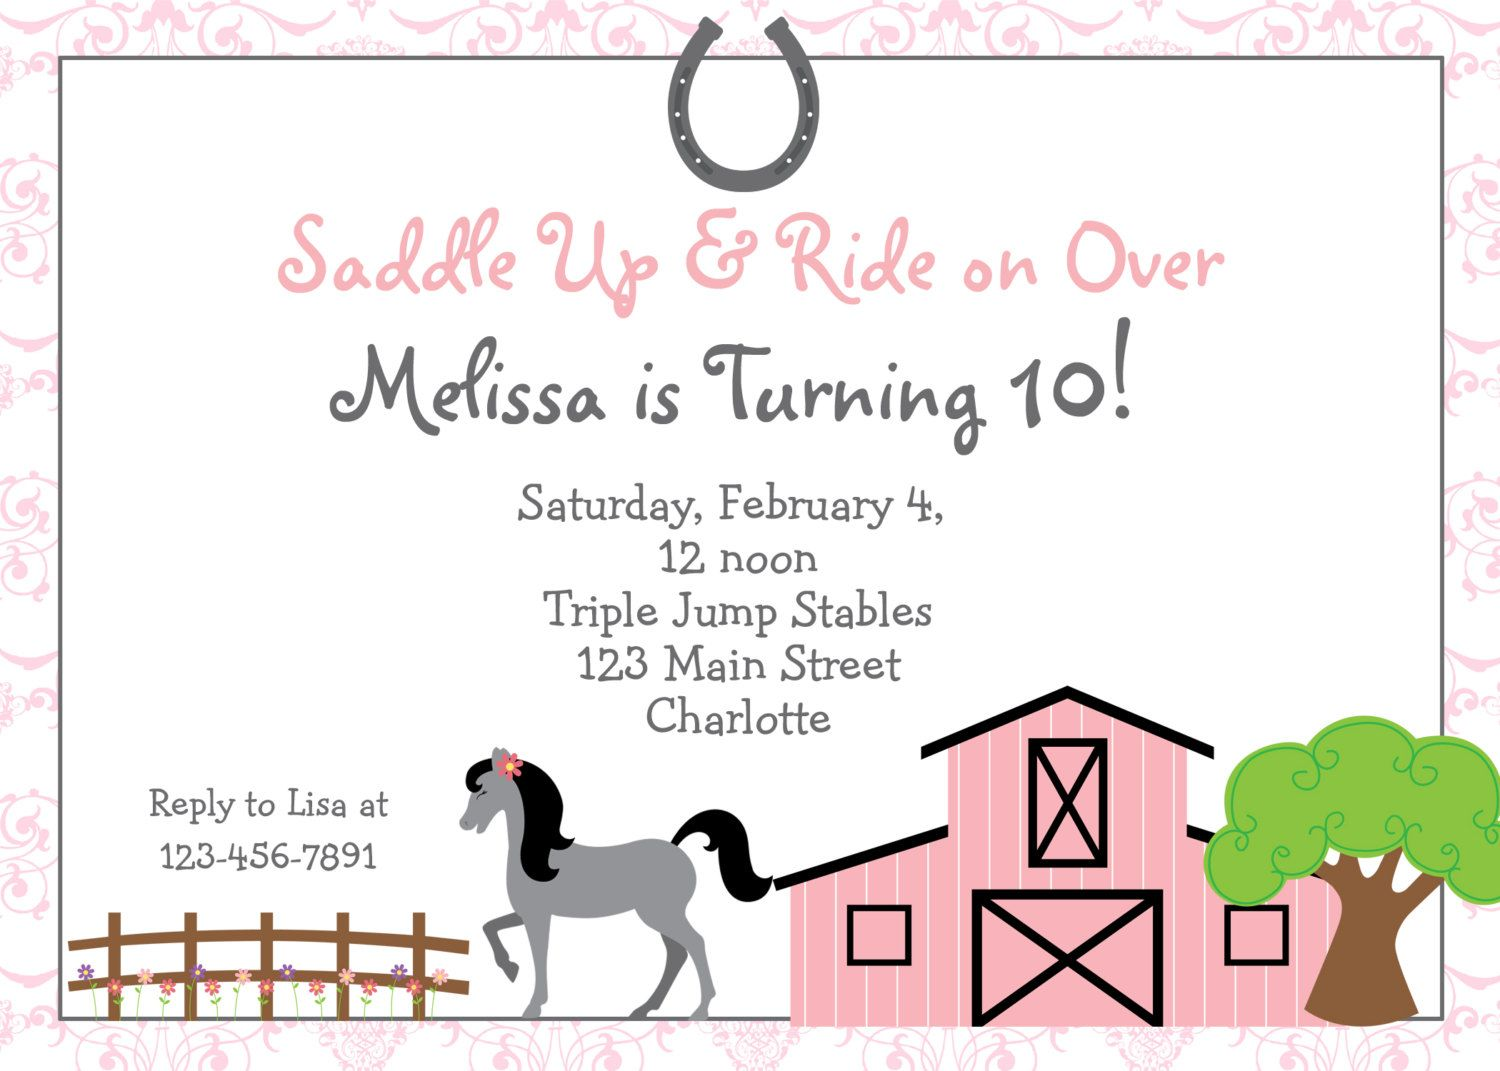 printable horse riding party invitations birthday printable horse riding party invitations